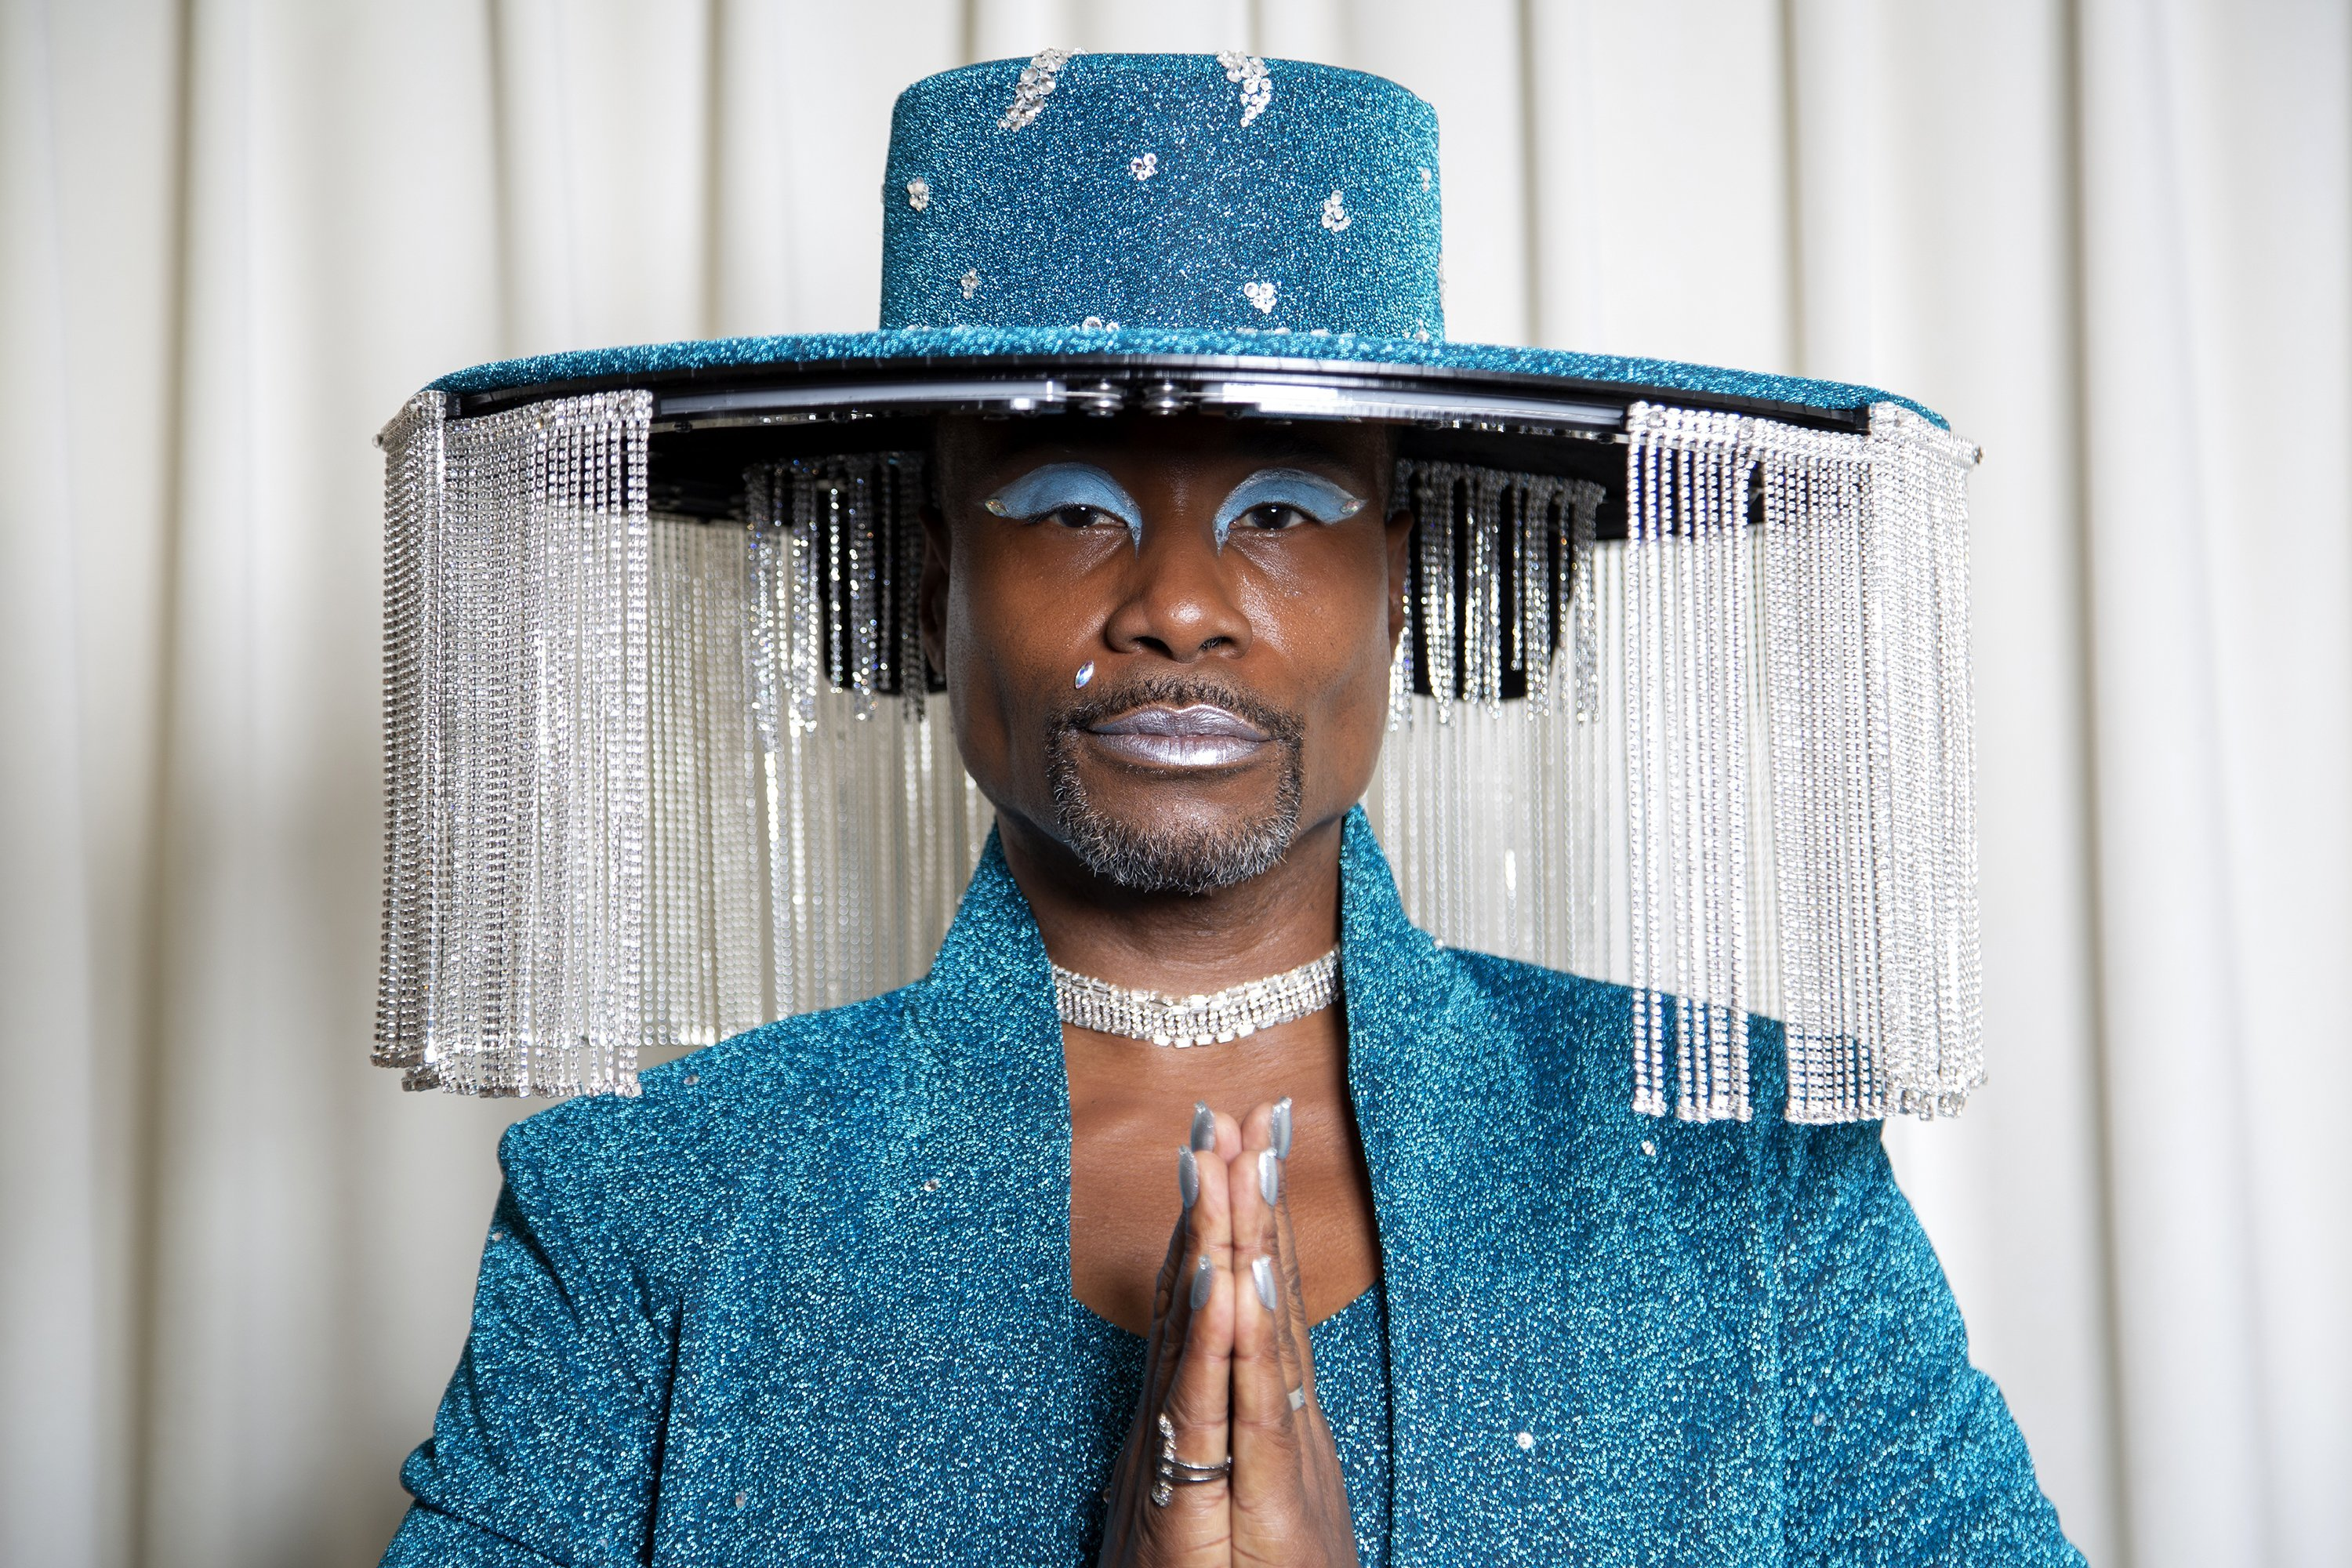 Billy Porter attends the 62nd Annual GRAMMY Awards at Staples Center on January 26, 2020 | Photo: GettyImages